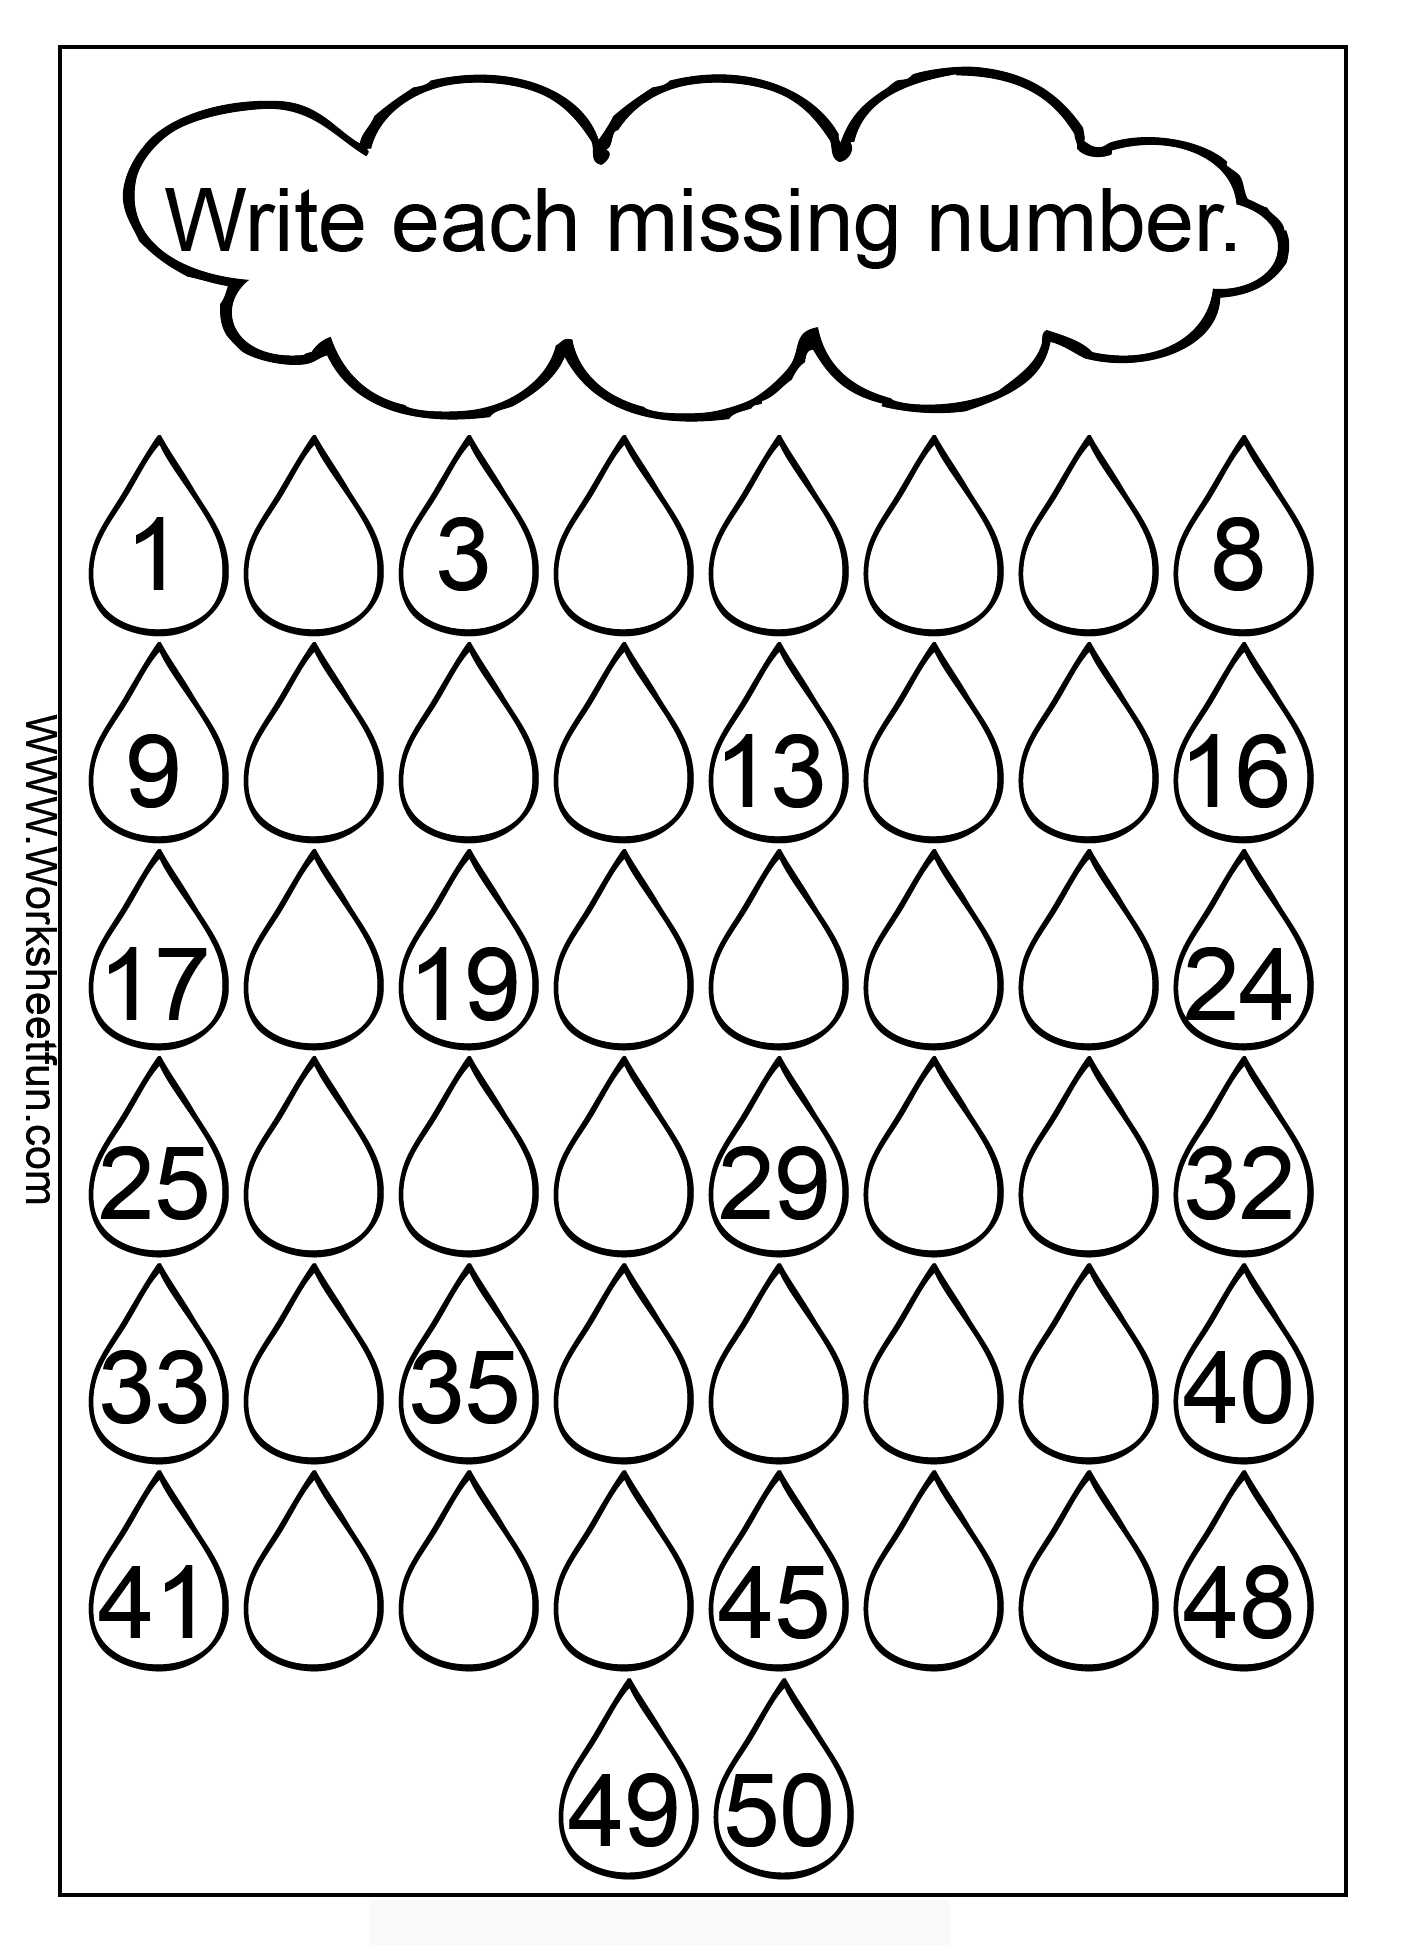 Fill In The Missing Numbers Worksheet School